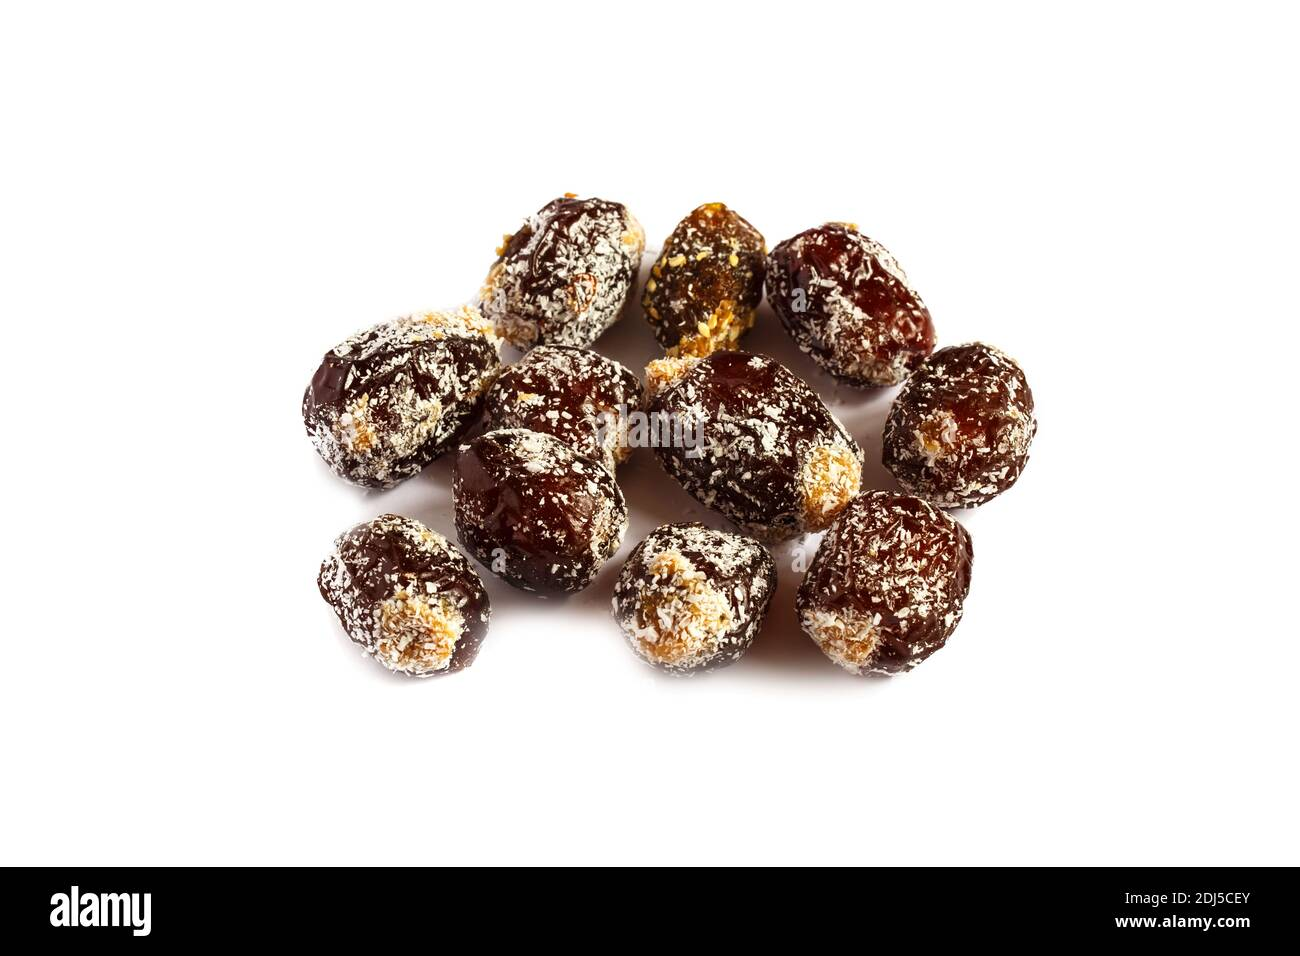 Pitted dates isolated on white background. dates filled with peanut butter and sprinkled with coconut flakes Stock Photo